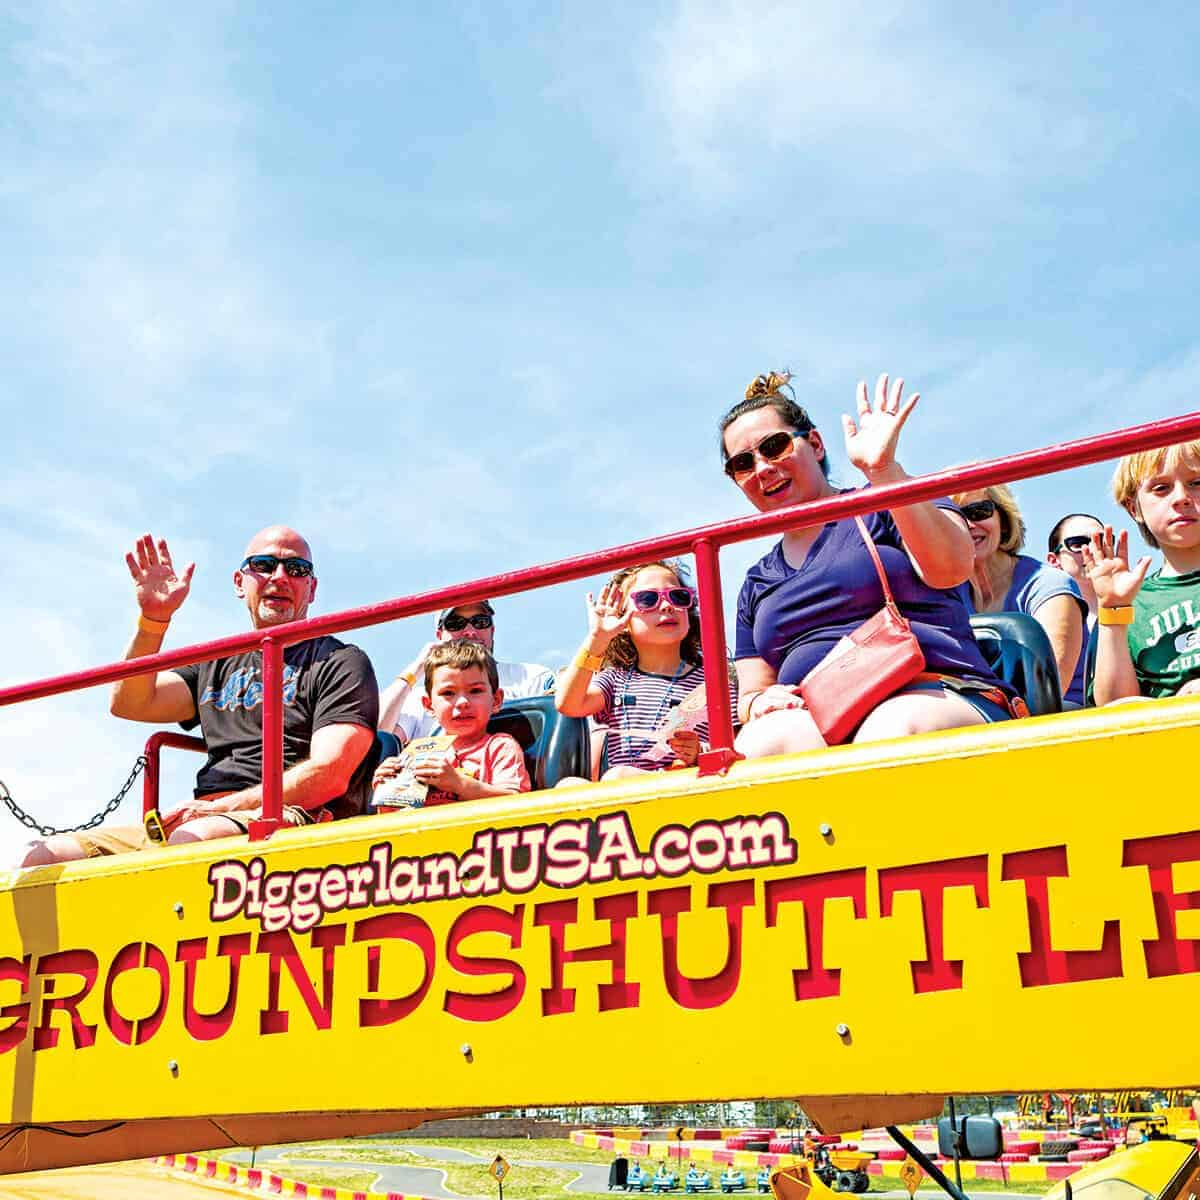 Groundshuttle ride with family waving and smiling